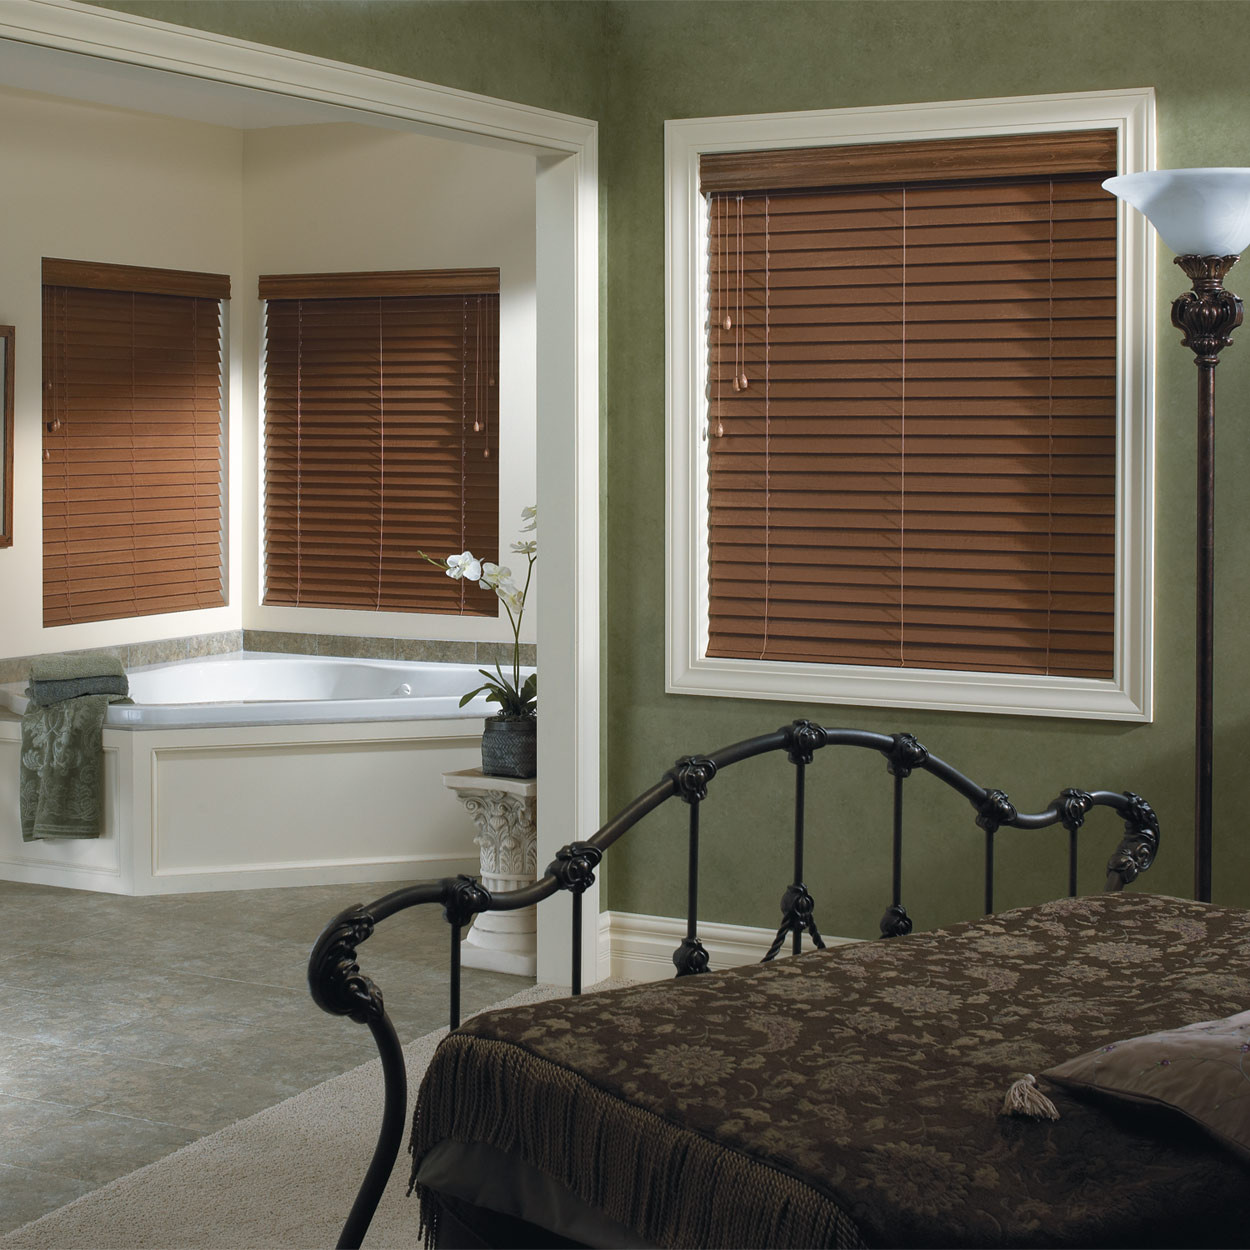 Real wood vs faux wood blinds - Wood Blinds Vs Faux Wood Blinds